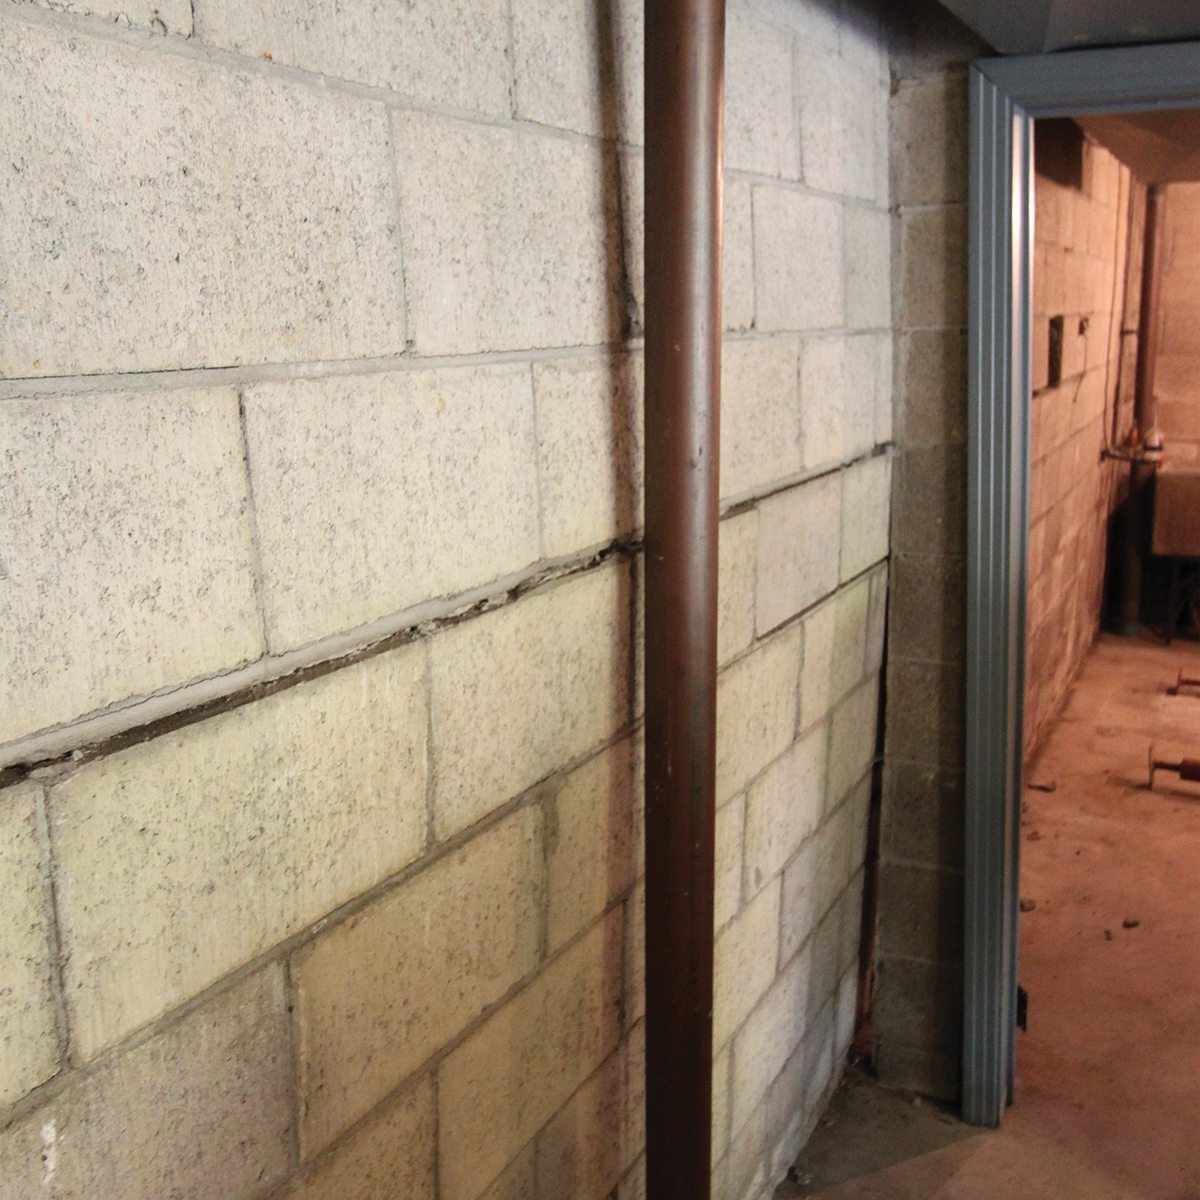 Bowing Basement Walls Ideas